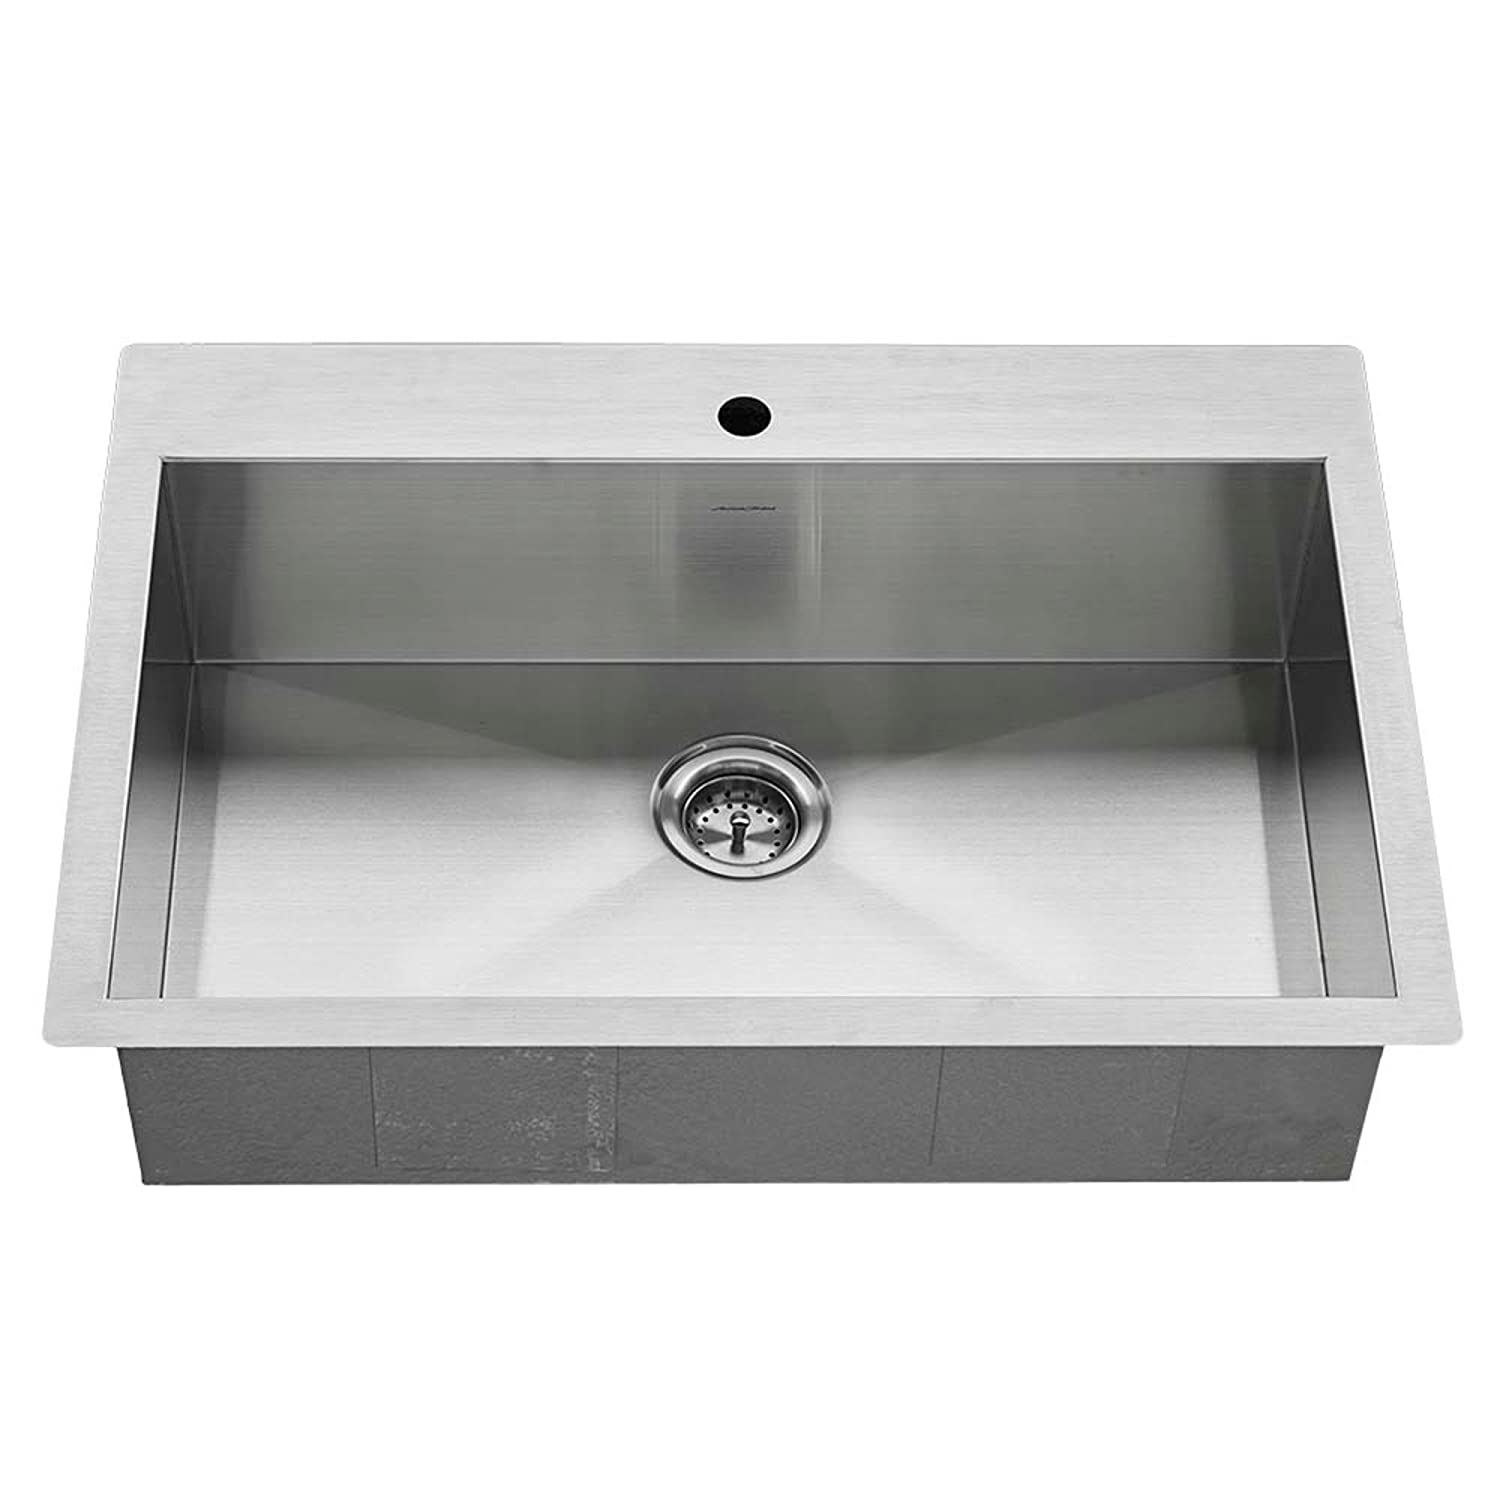 American Standard 18SB.9332211.075 Edgewater Zero Radius Dual Mount 33×22 Single Bowl w grid and drain, Stainless Steel